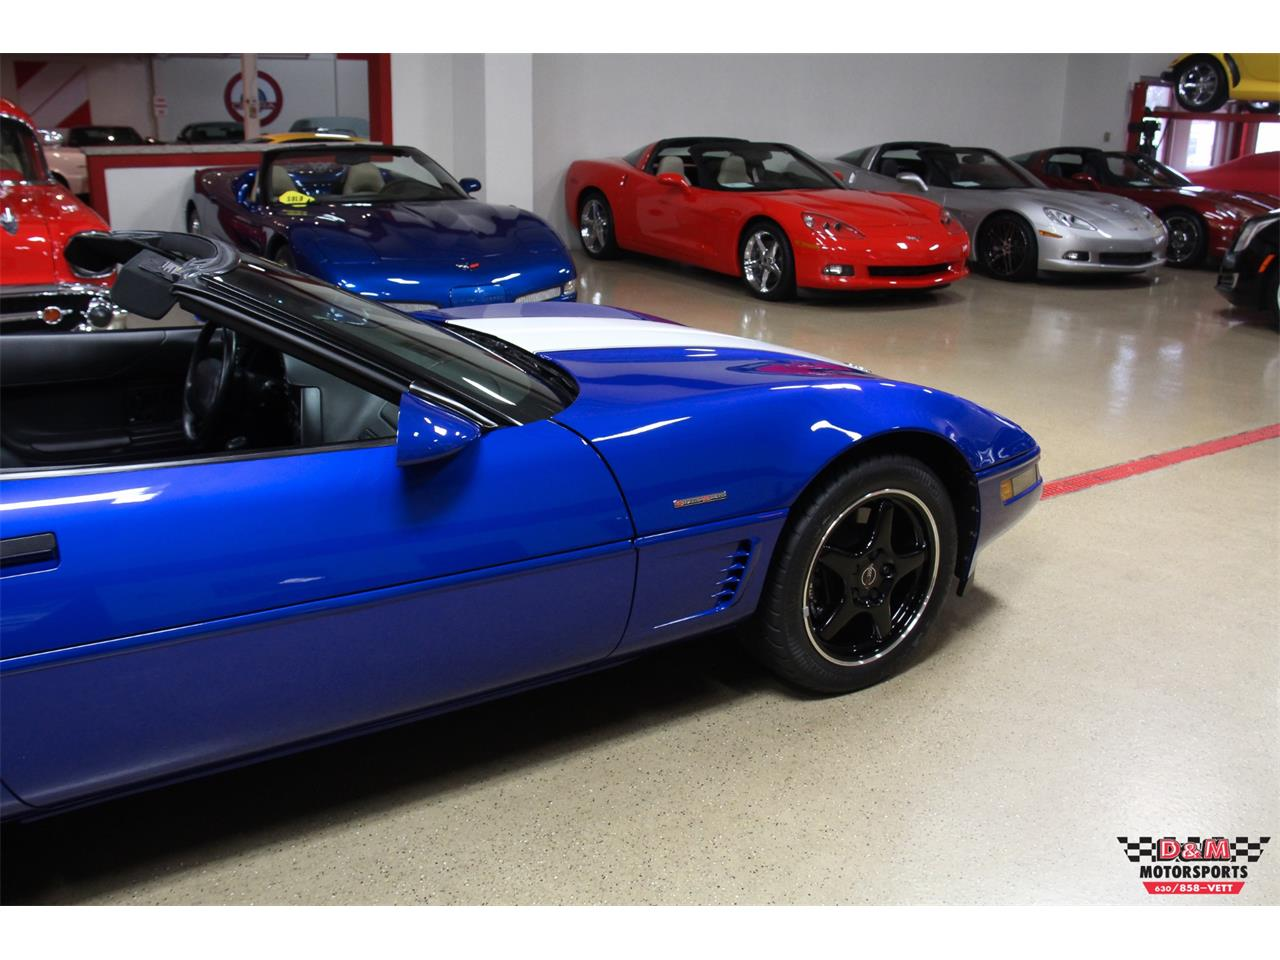 Large Picture of '96 Corvette Offered by D & M Motorsports - LV9Z